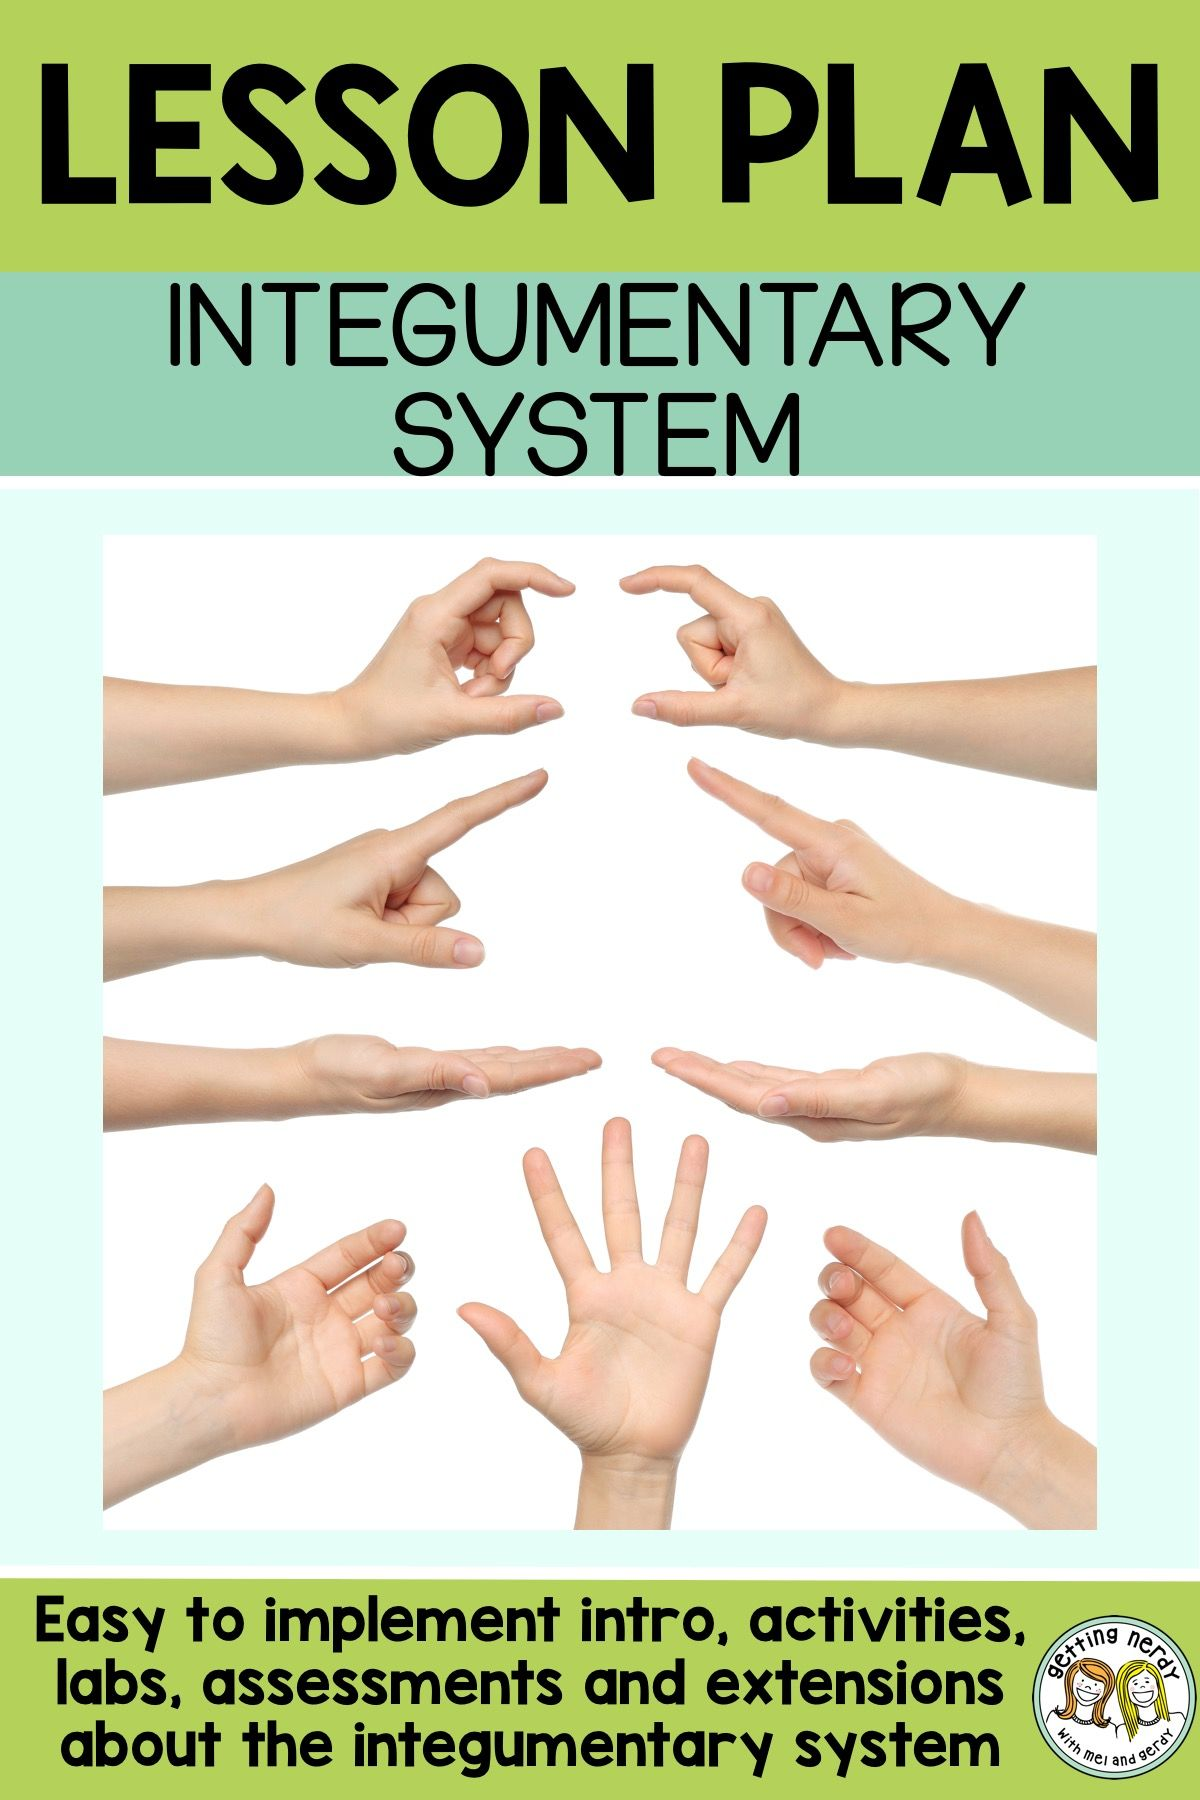 This a great lesson plan and lab for teaching about the integumentary system  and touch receptor distribution #gettingnerdyscience #sciencelessonplan